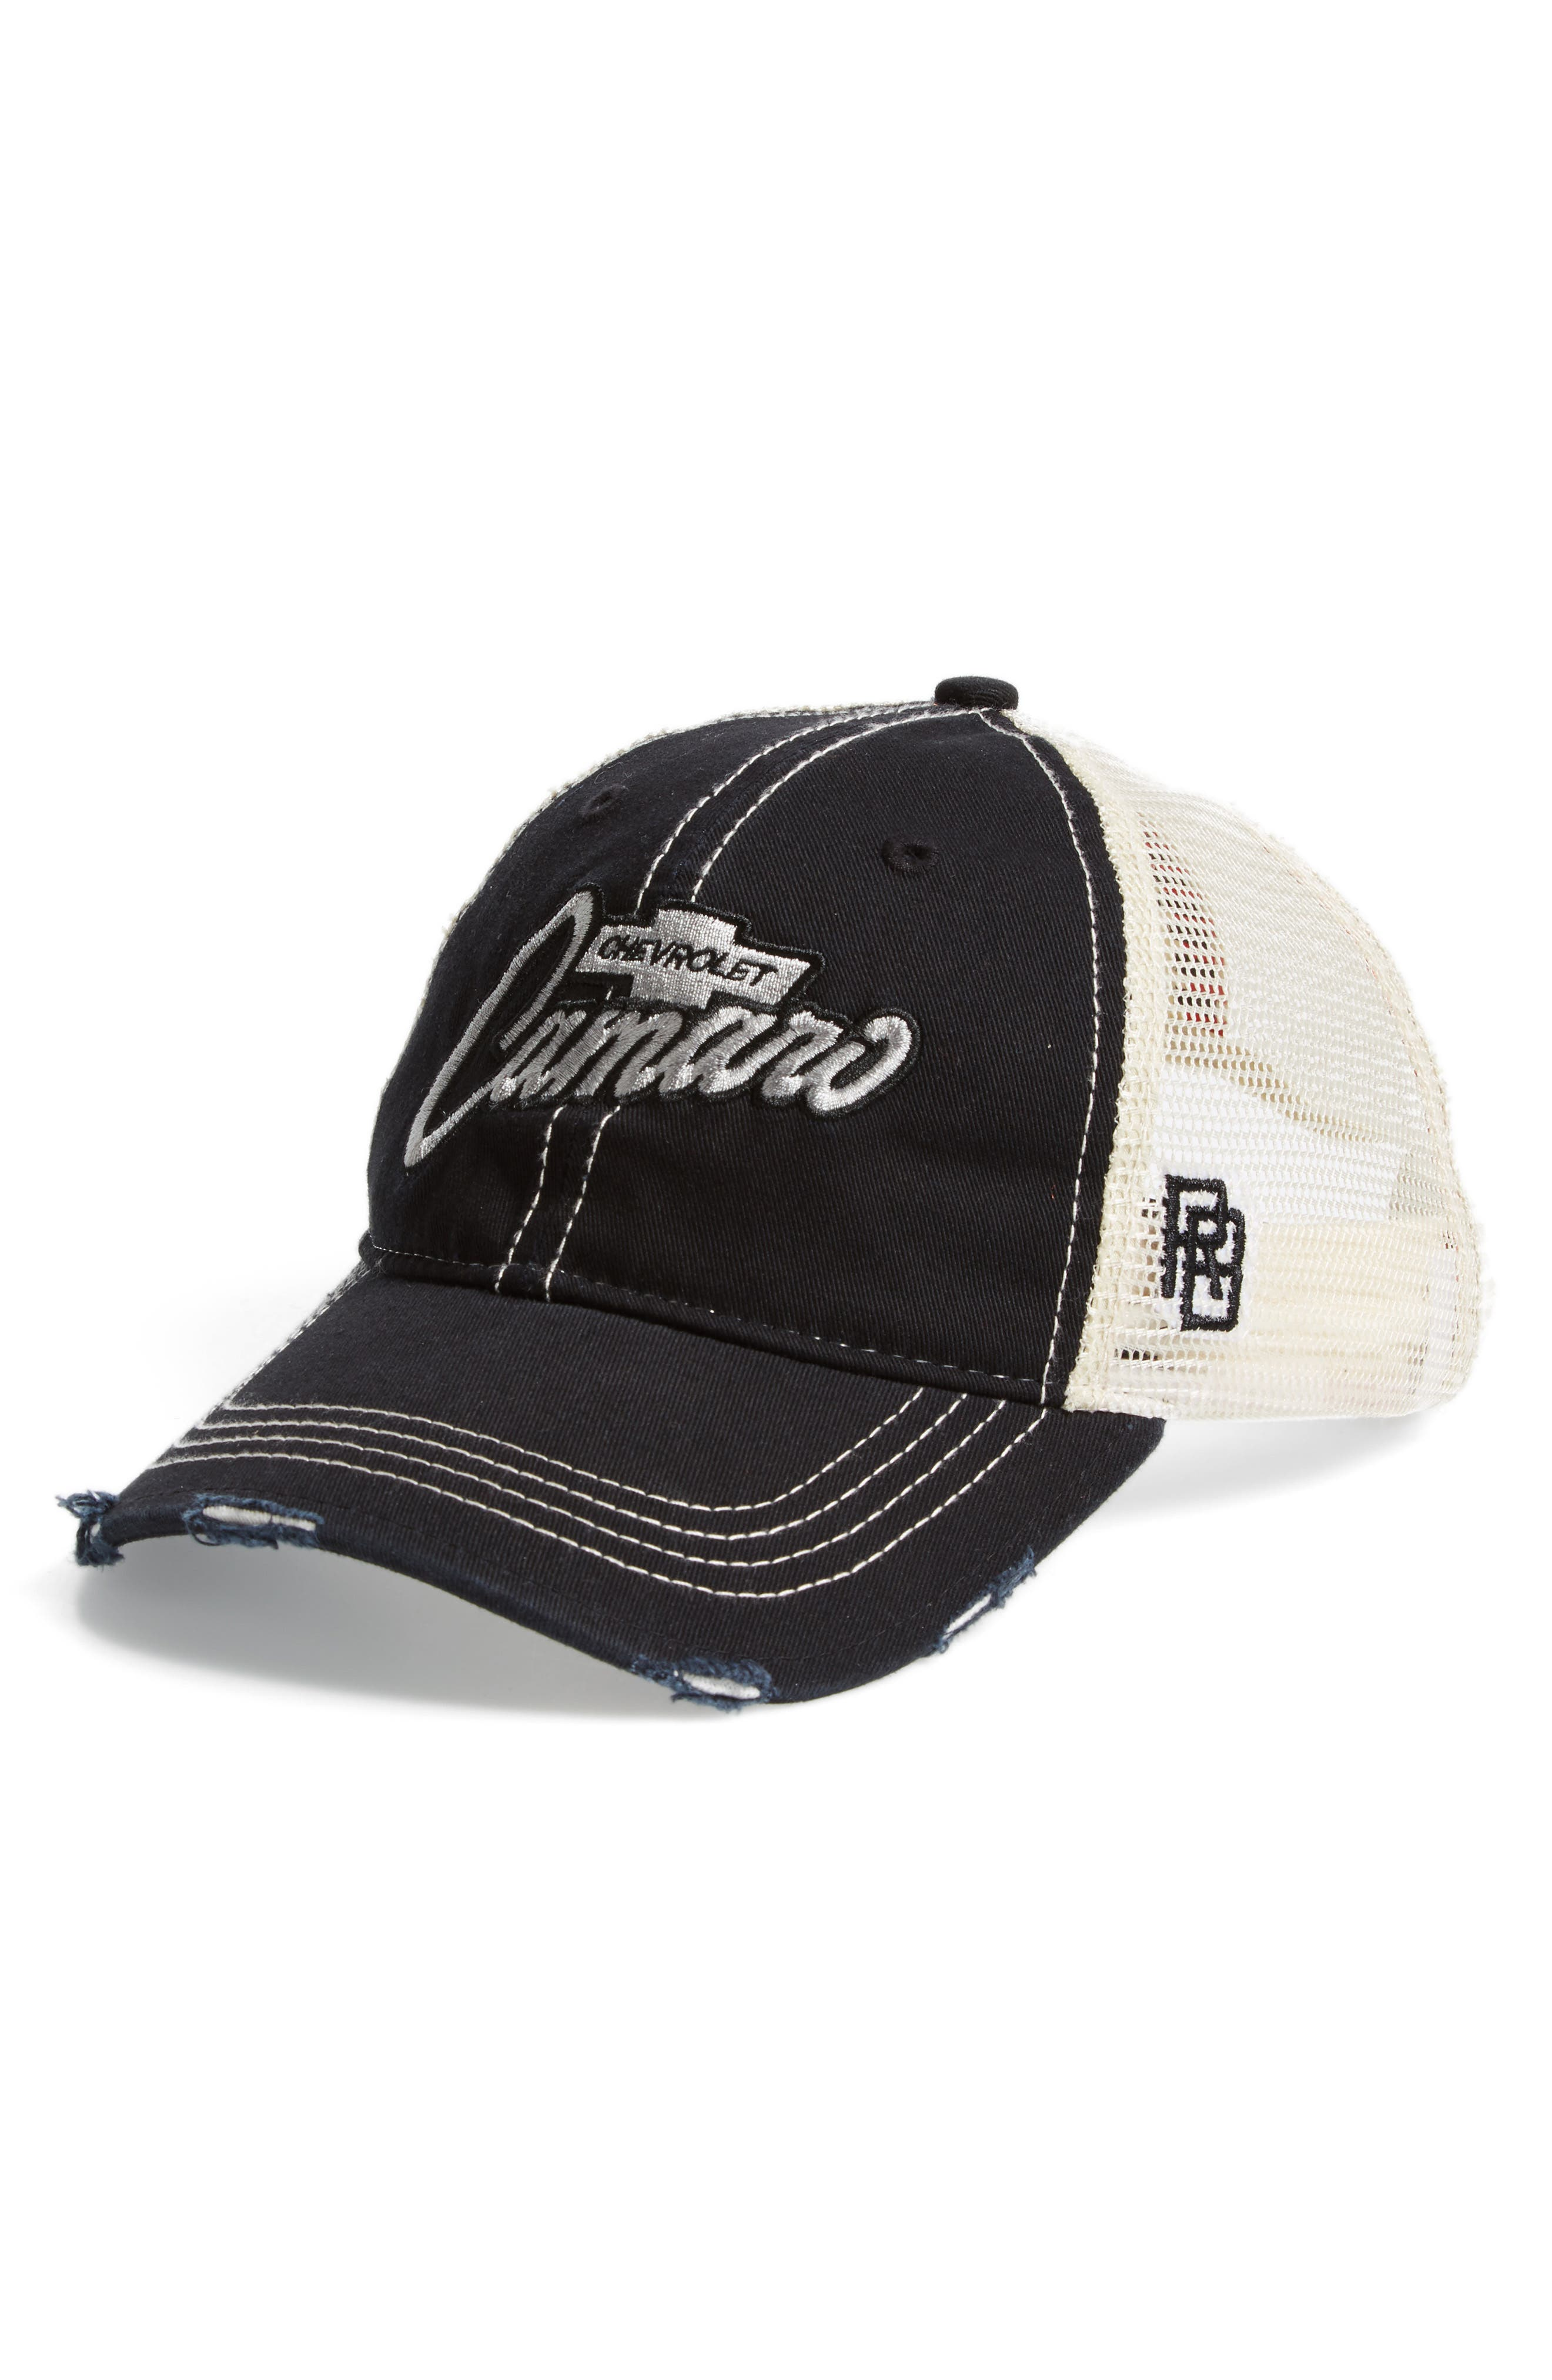 Original Retro Brand Camaro Trucker Hat,                         Main,                         color, Black